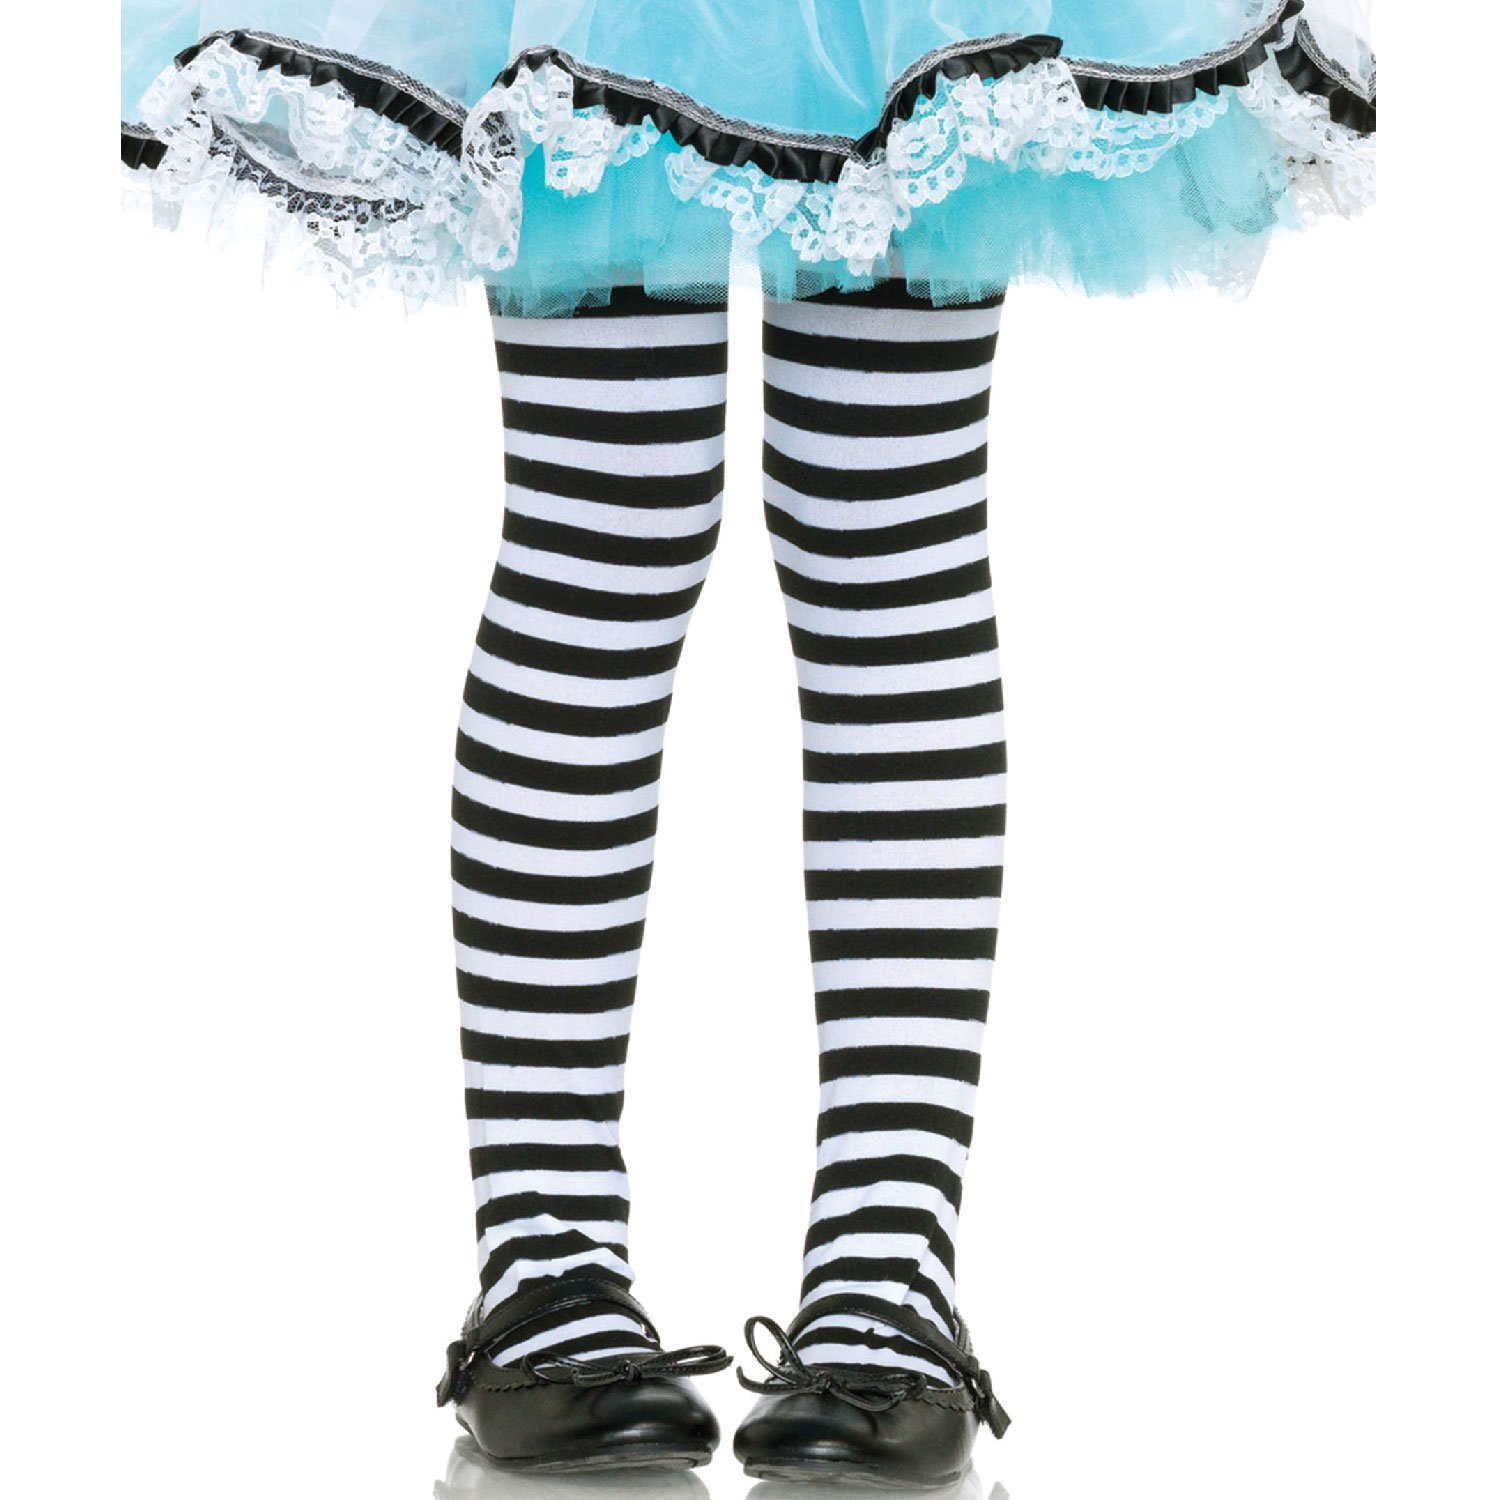 Children's Striped Tights Children' s Striped Tights Leg Avenue- Kids costumes 471002011